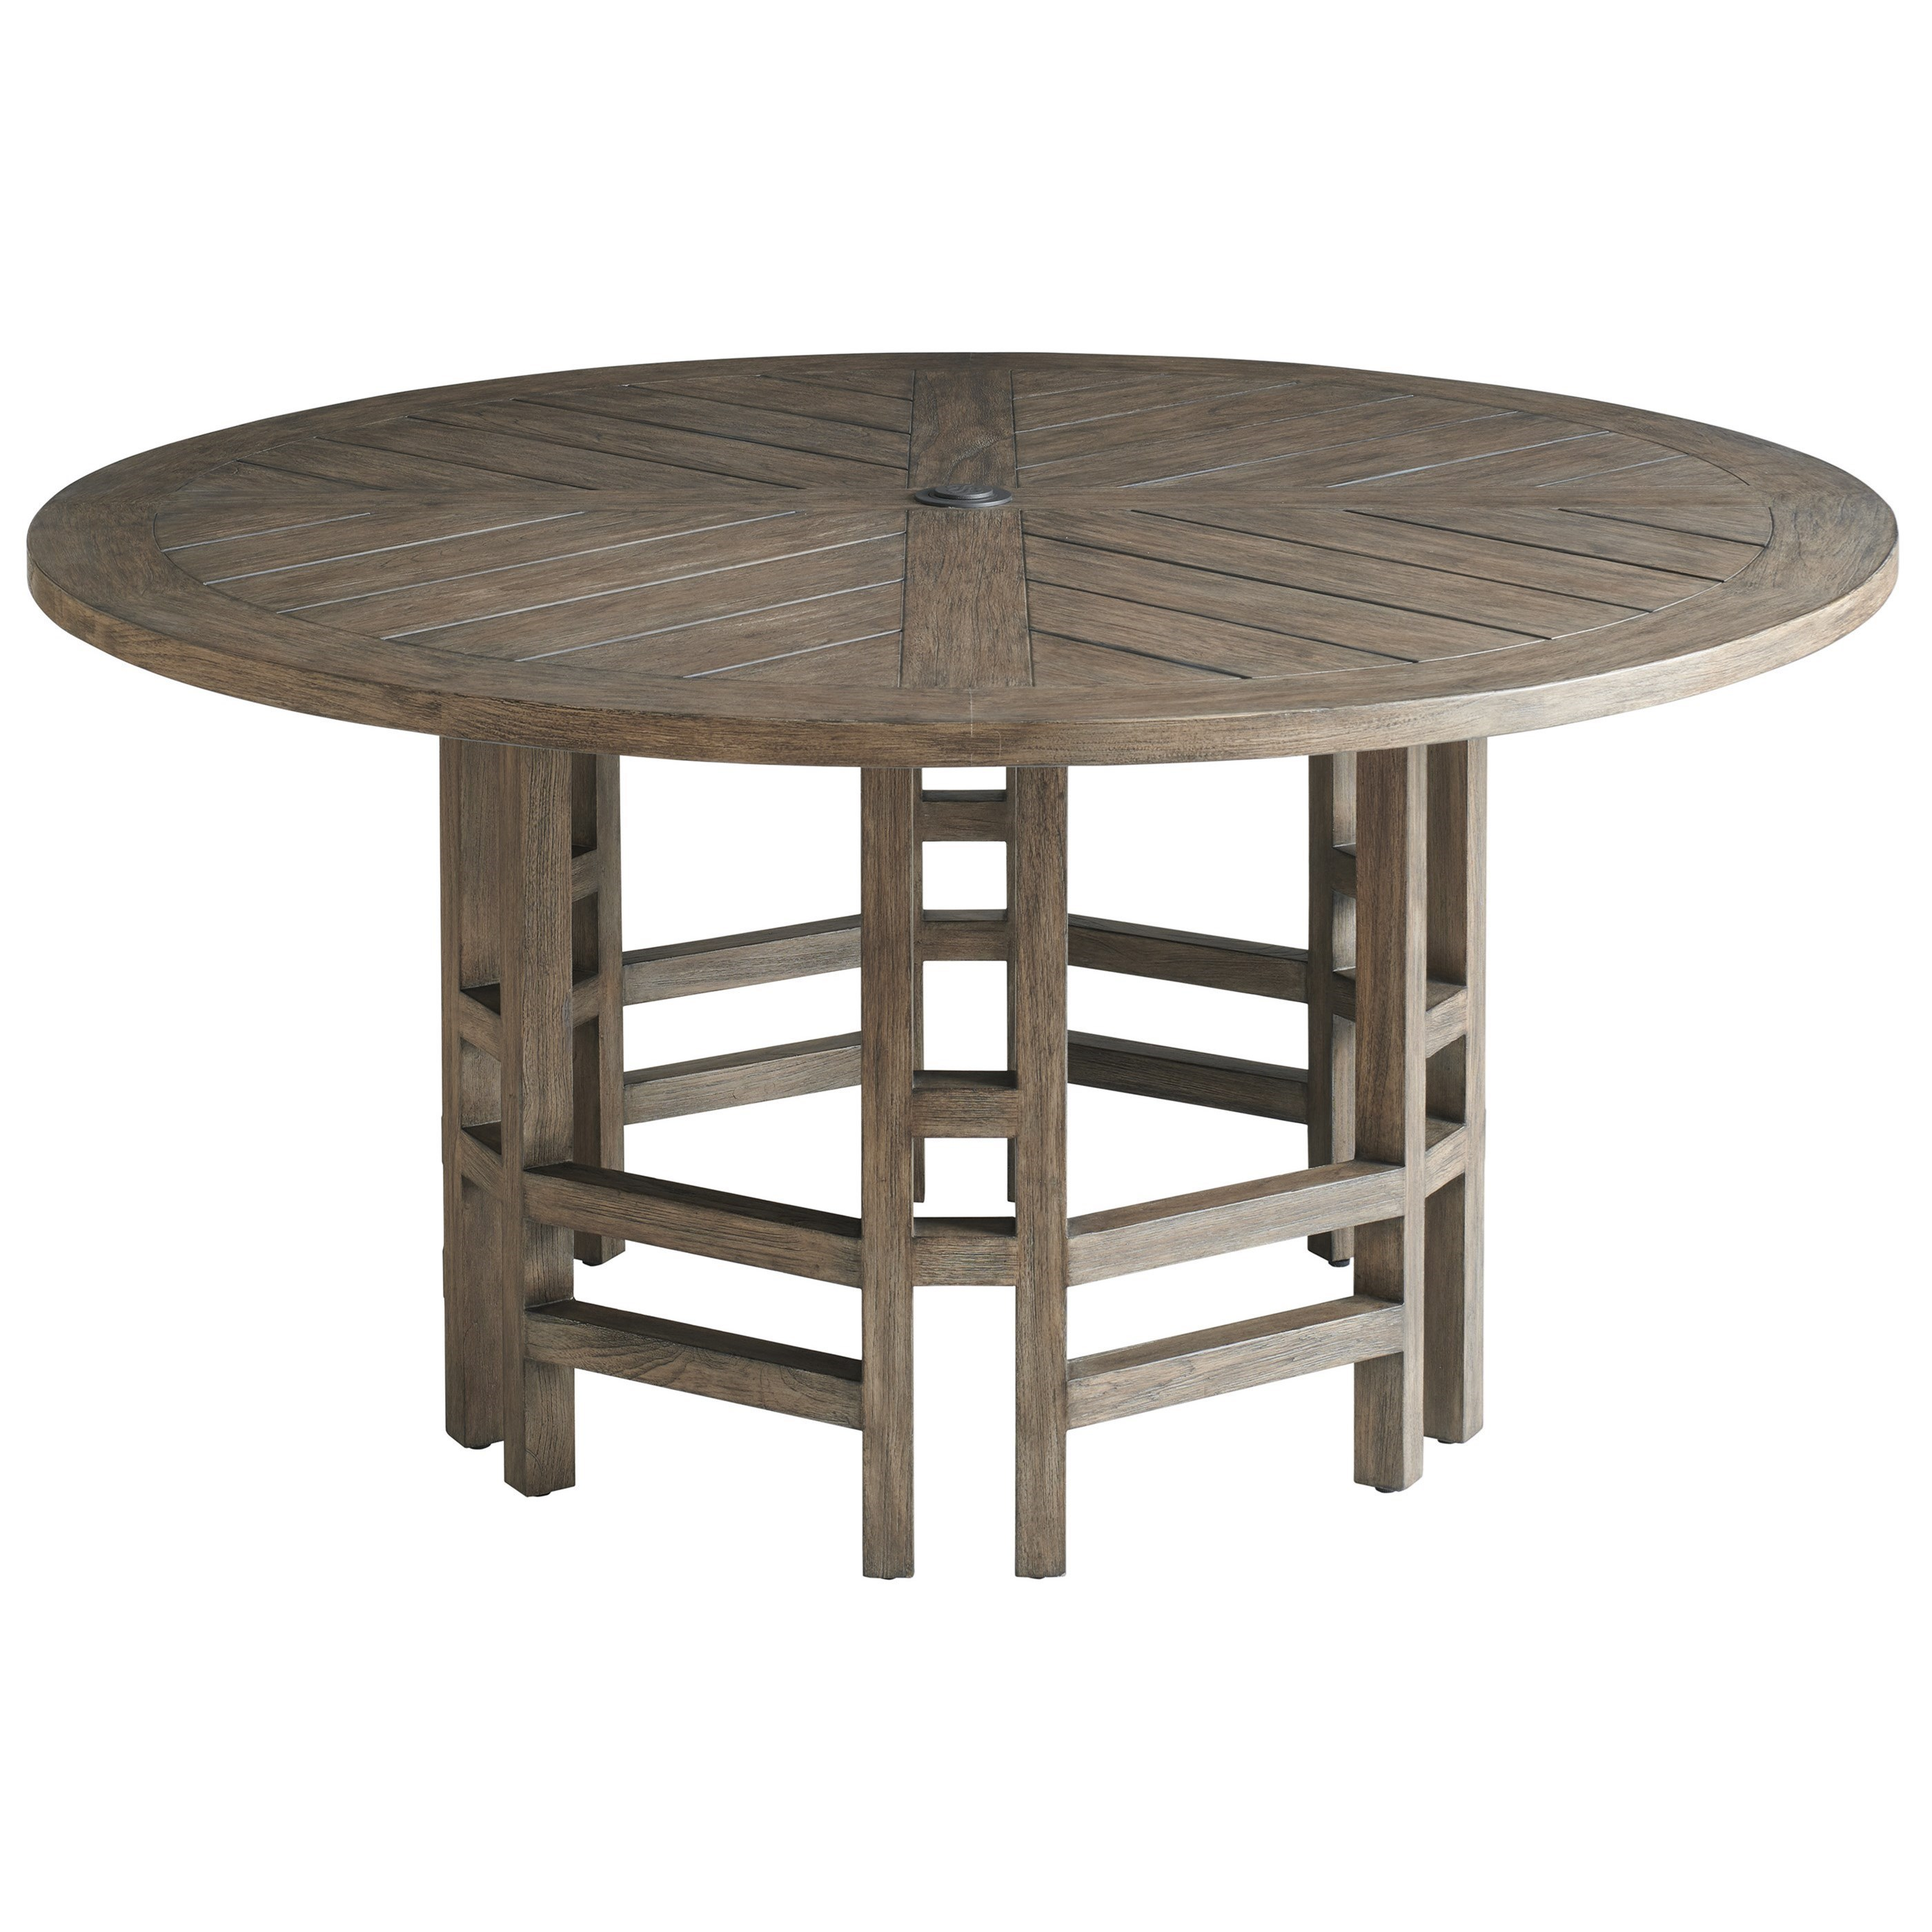 Contemporary Outdoor Teak Round Dining Table